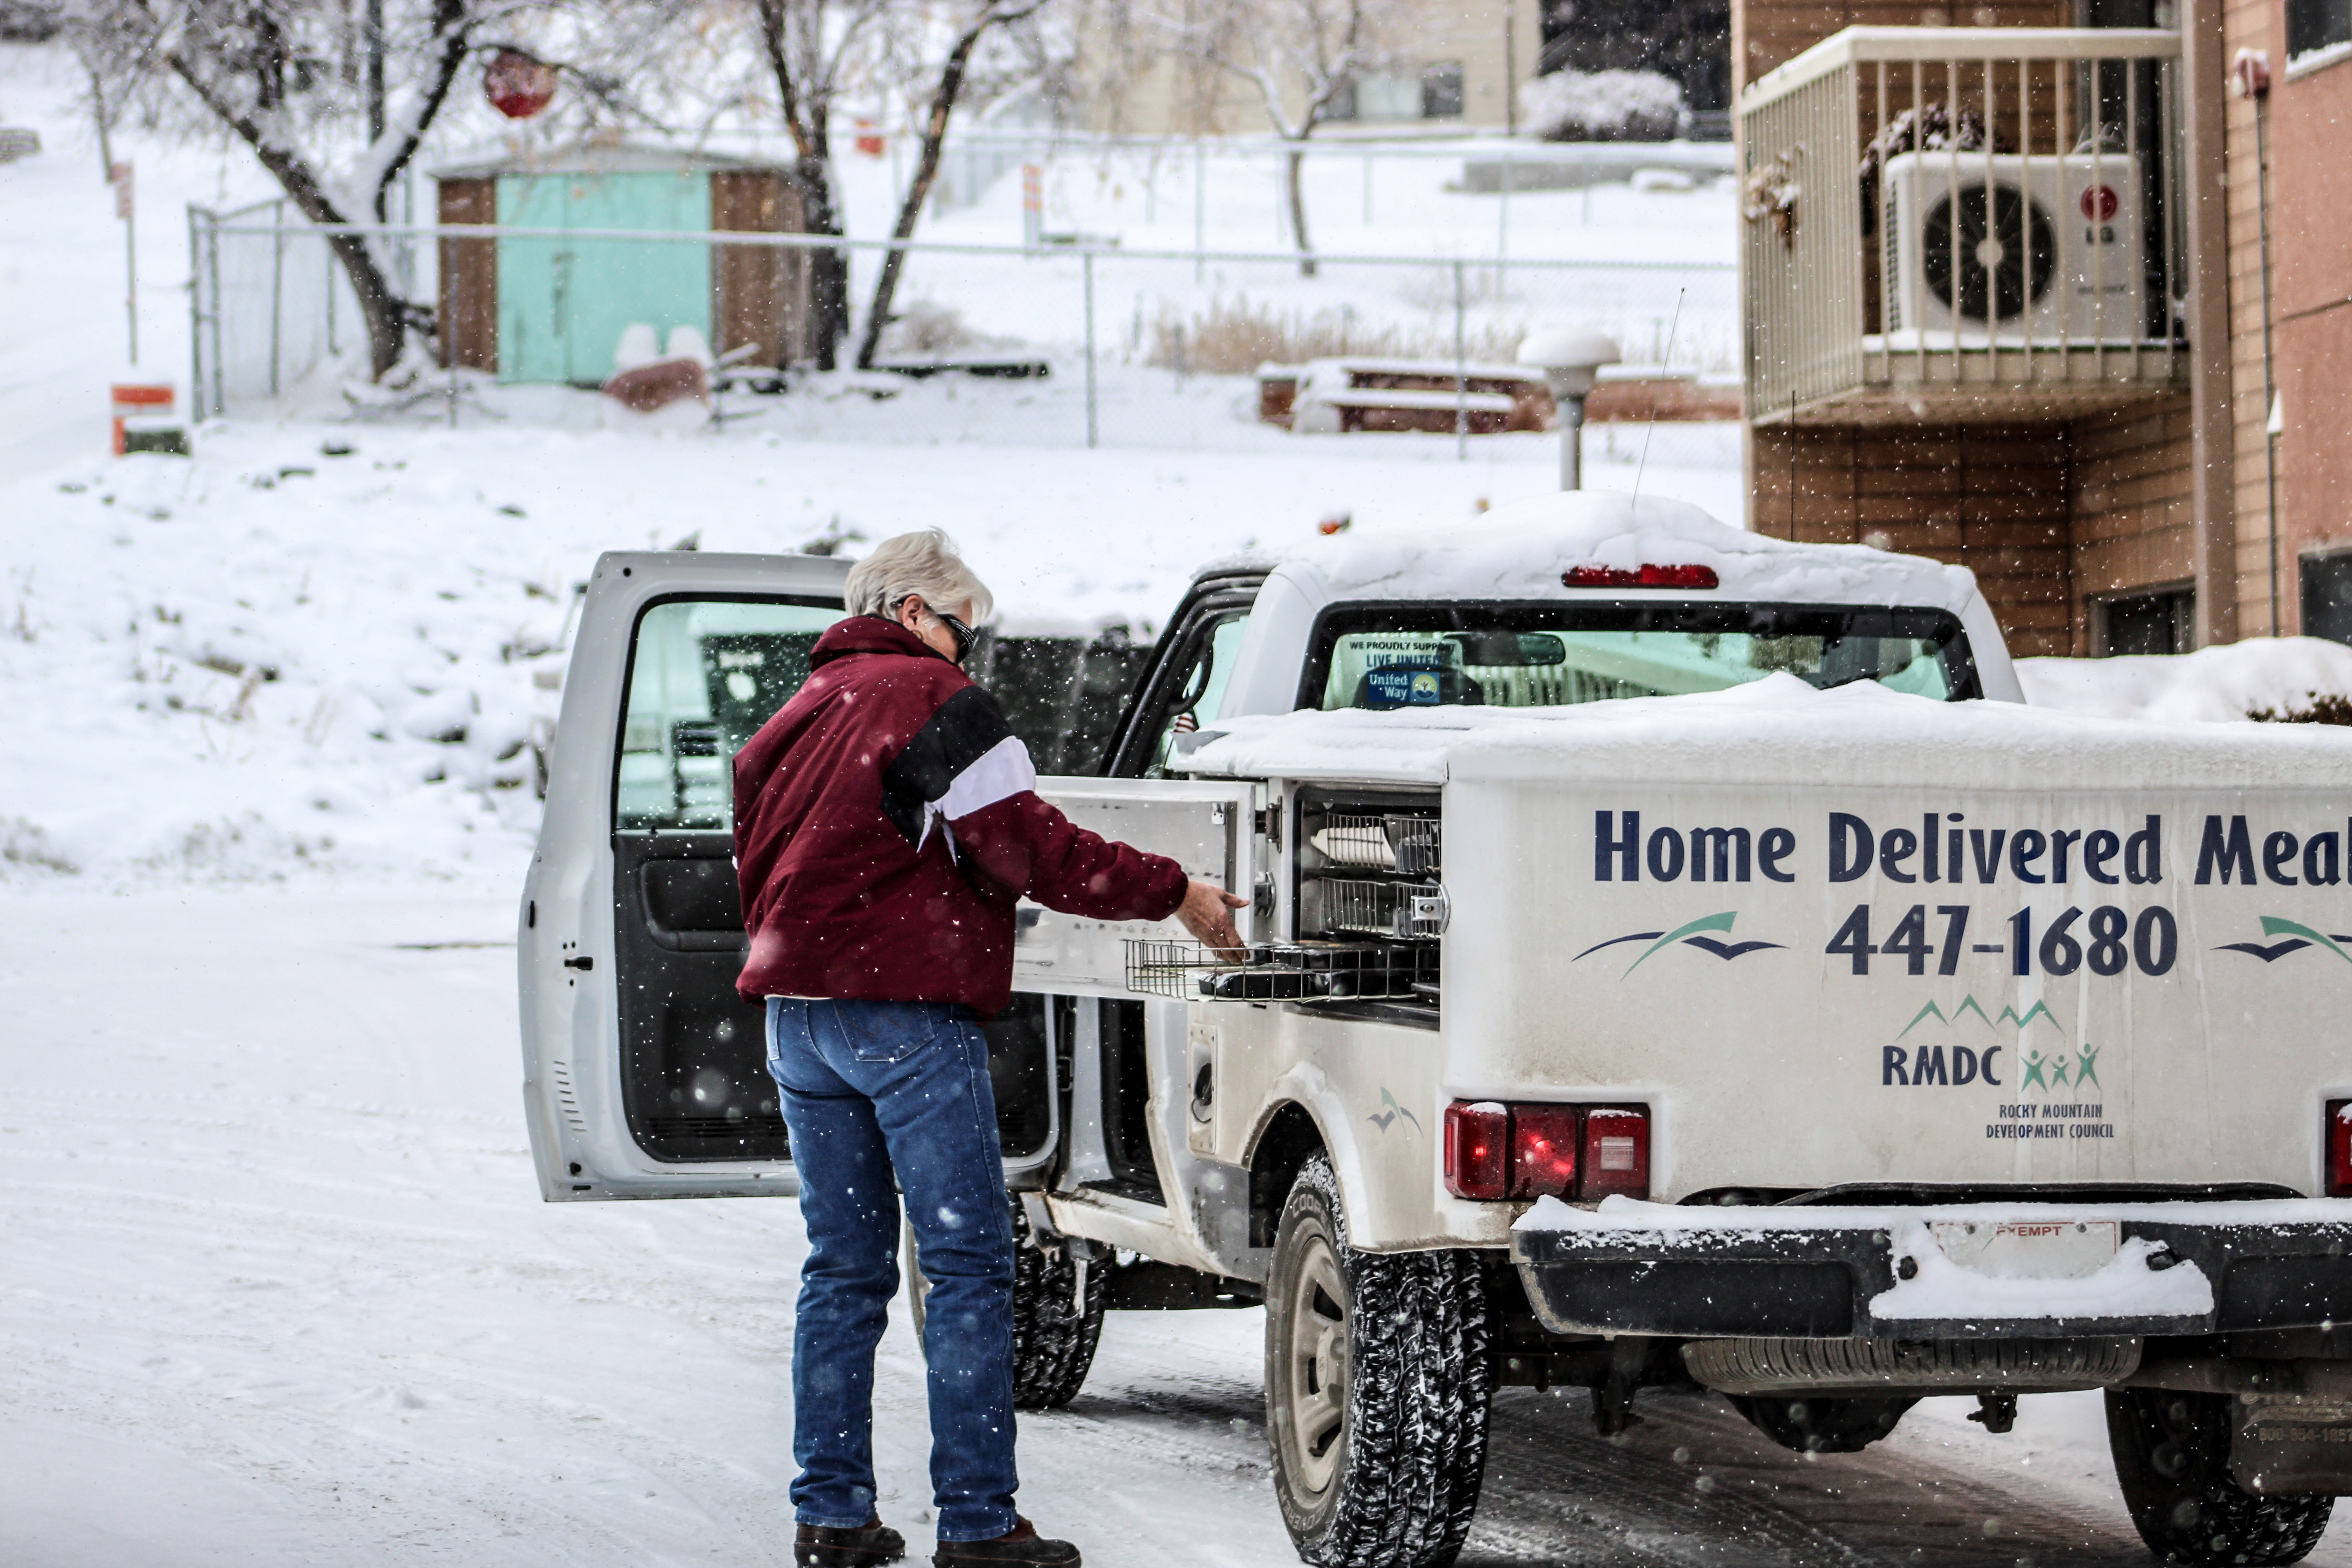 Pictured: Meals on Wheels driver, Duzzy, delivering meals on a snowy, winter day.